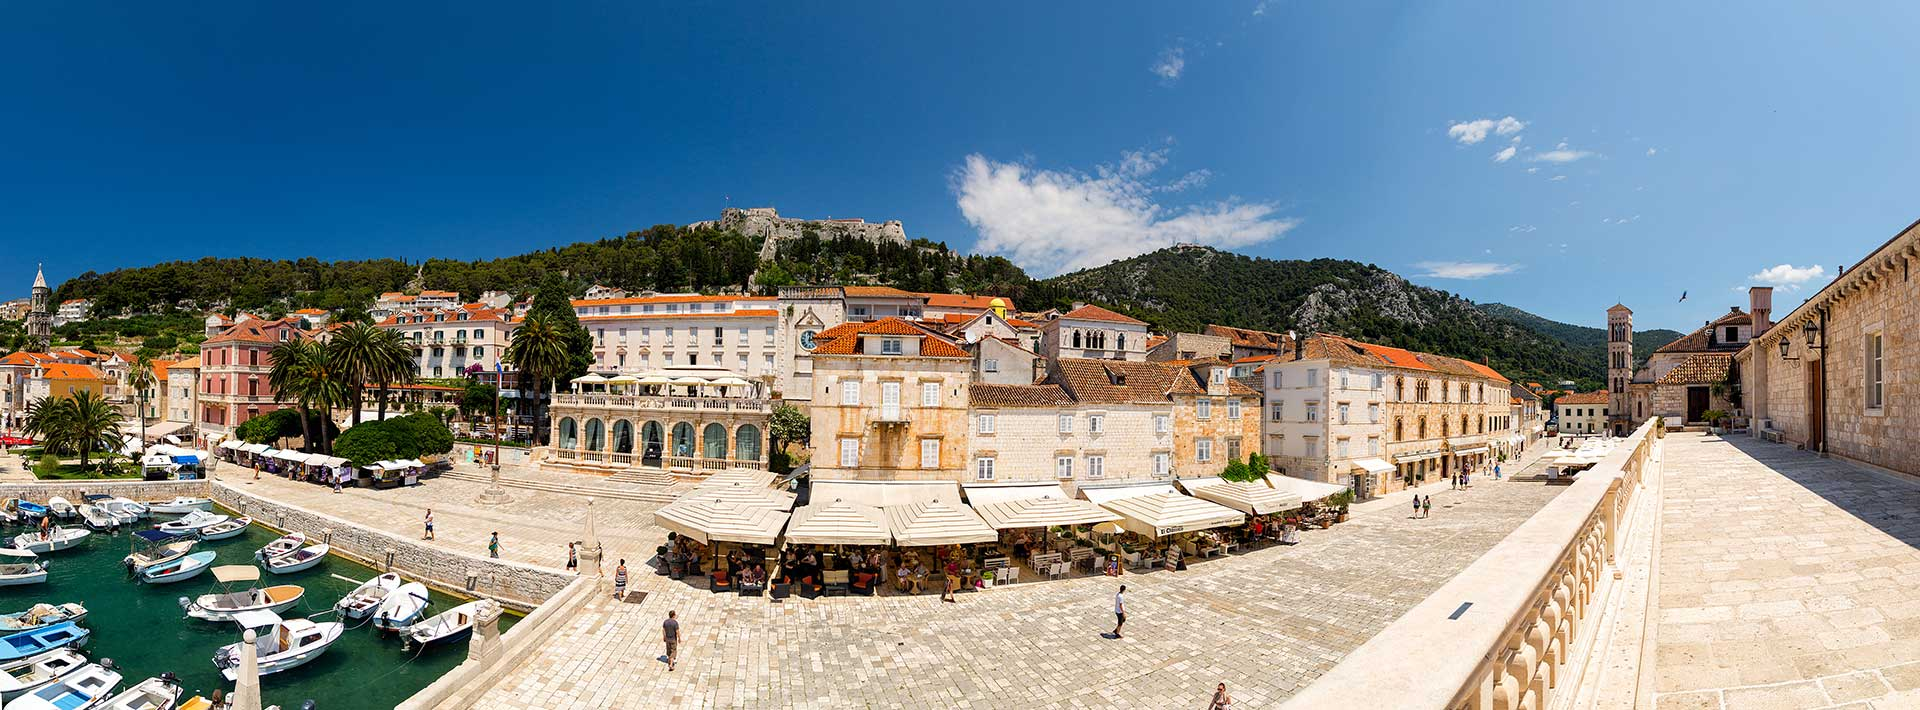 Town Hvar, island Hvar, port, square and cathedral